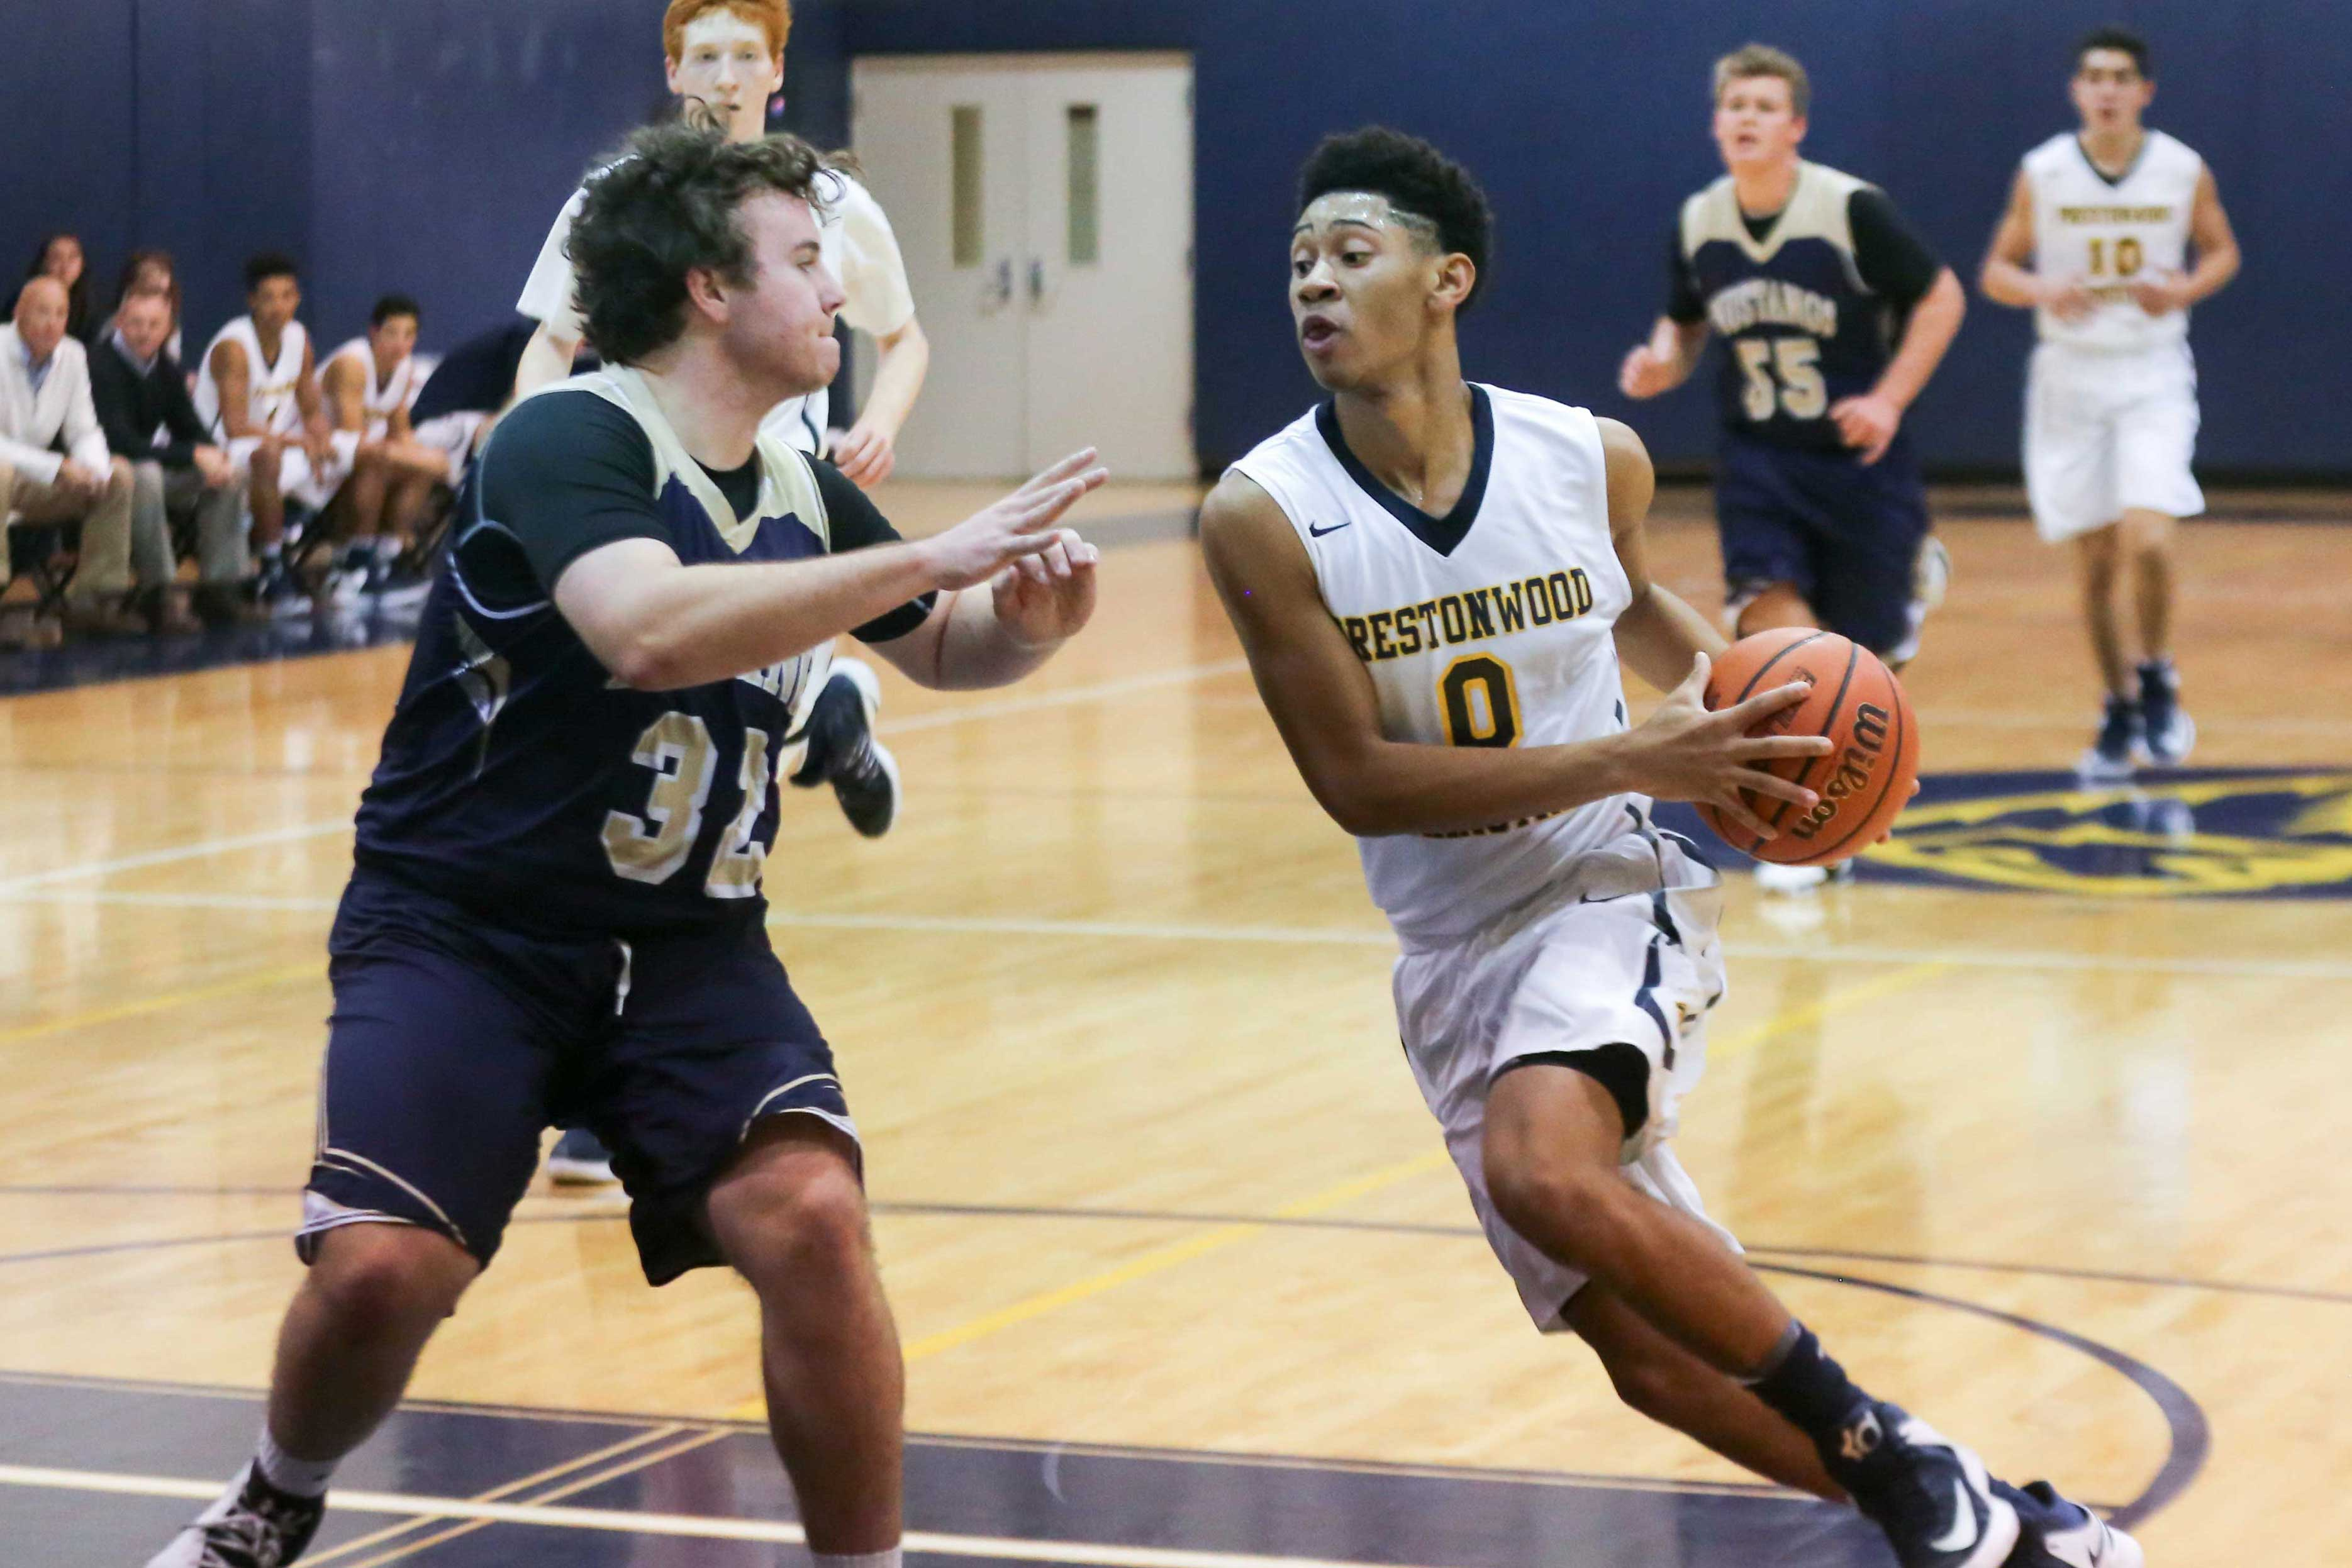 Sophomore Justin Webster drives for the basket against McKinney Christian. This is Justin's second year as a starter on the Boys Varsity Basketball team.